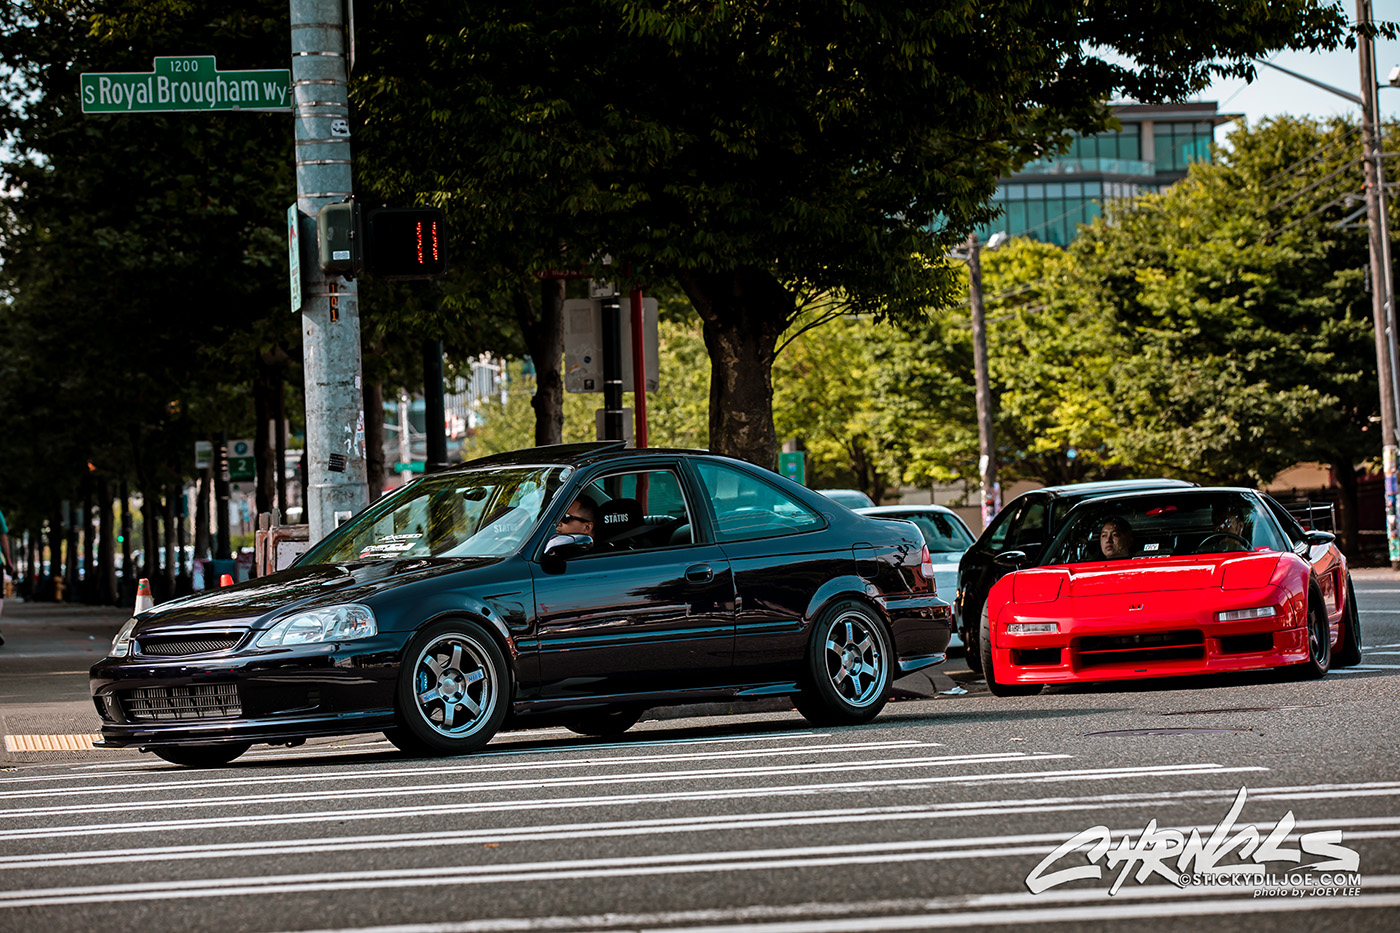 Wekfest Seattle 2019 Coverage… Part 2…